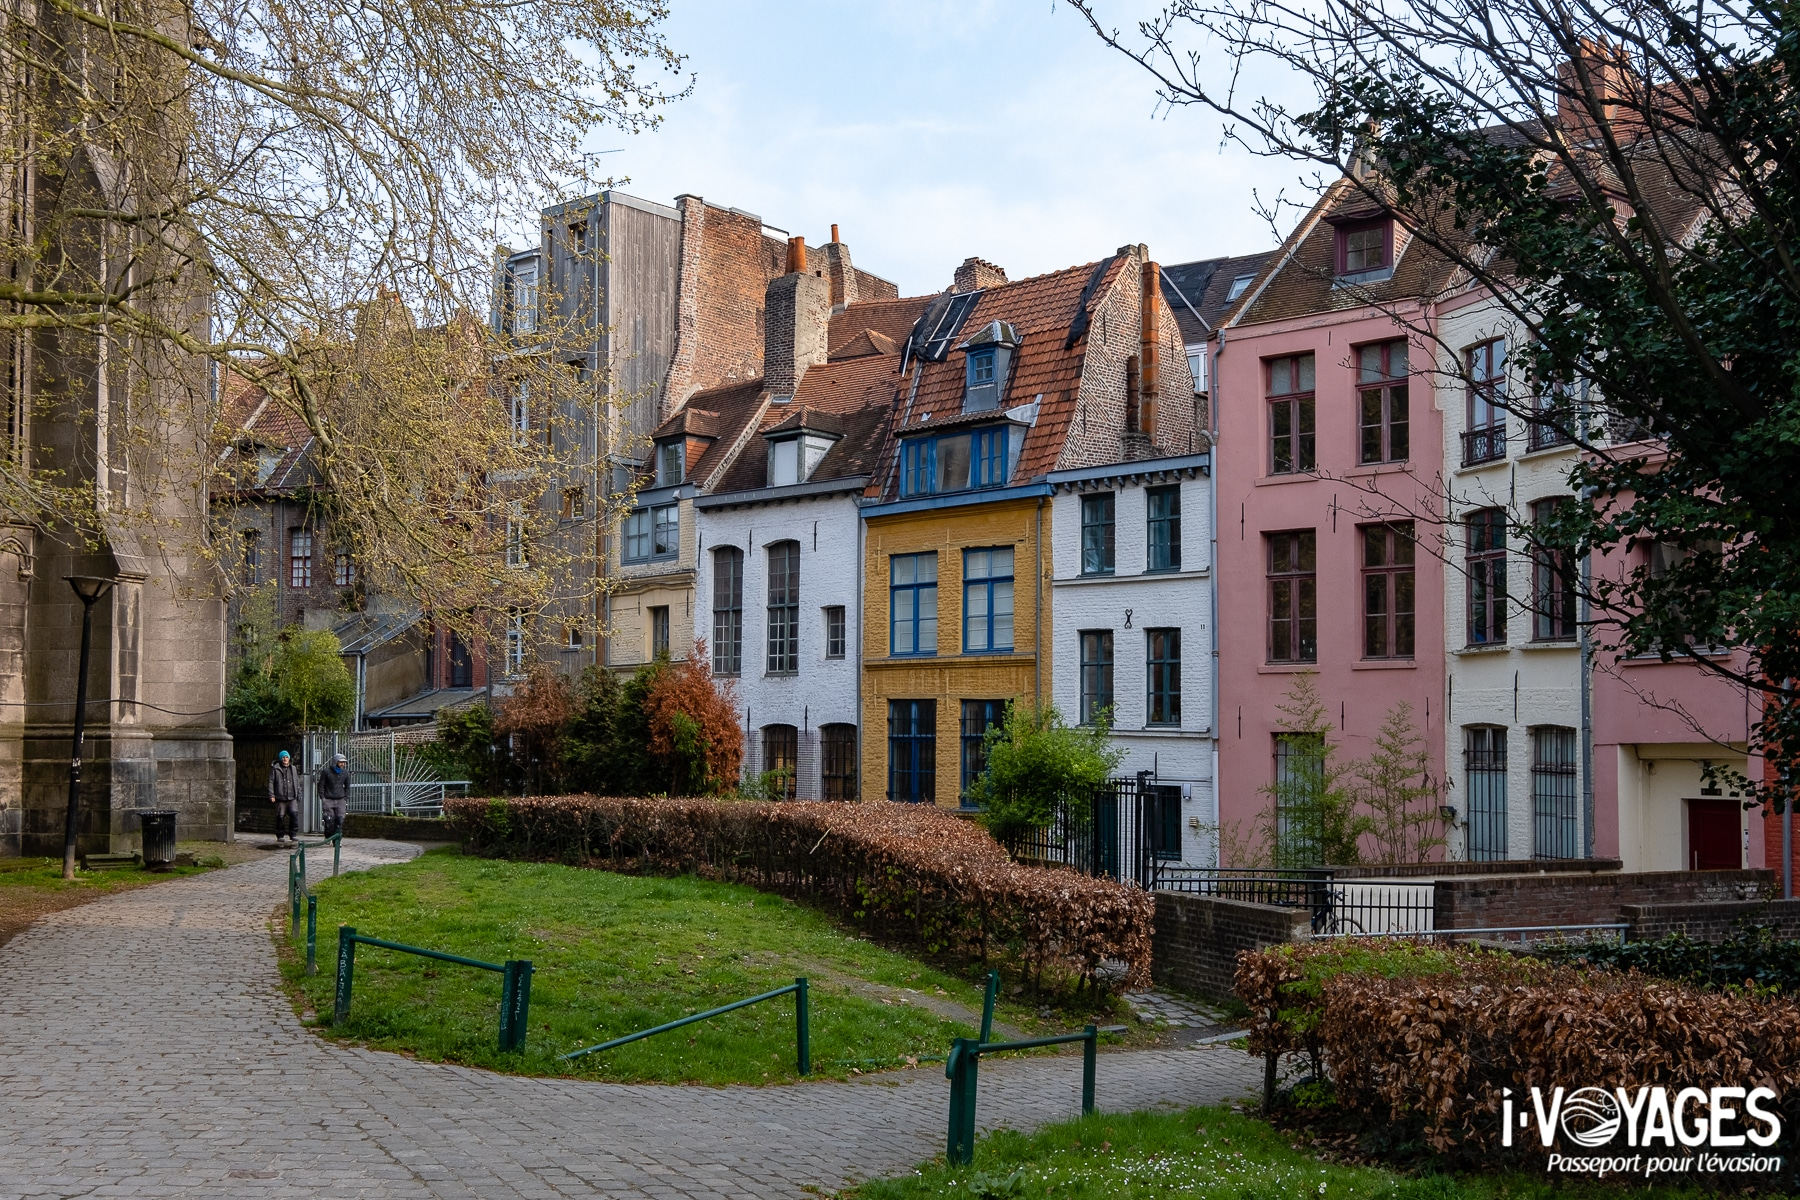 lille-gregoryrohart-0897